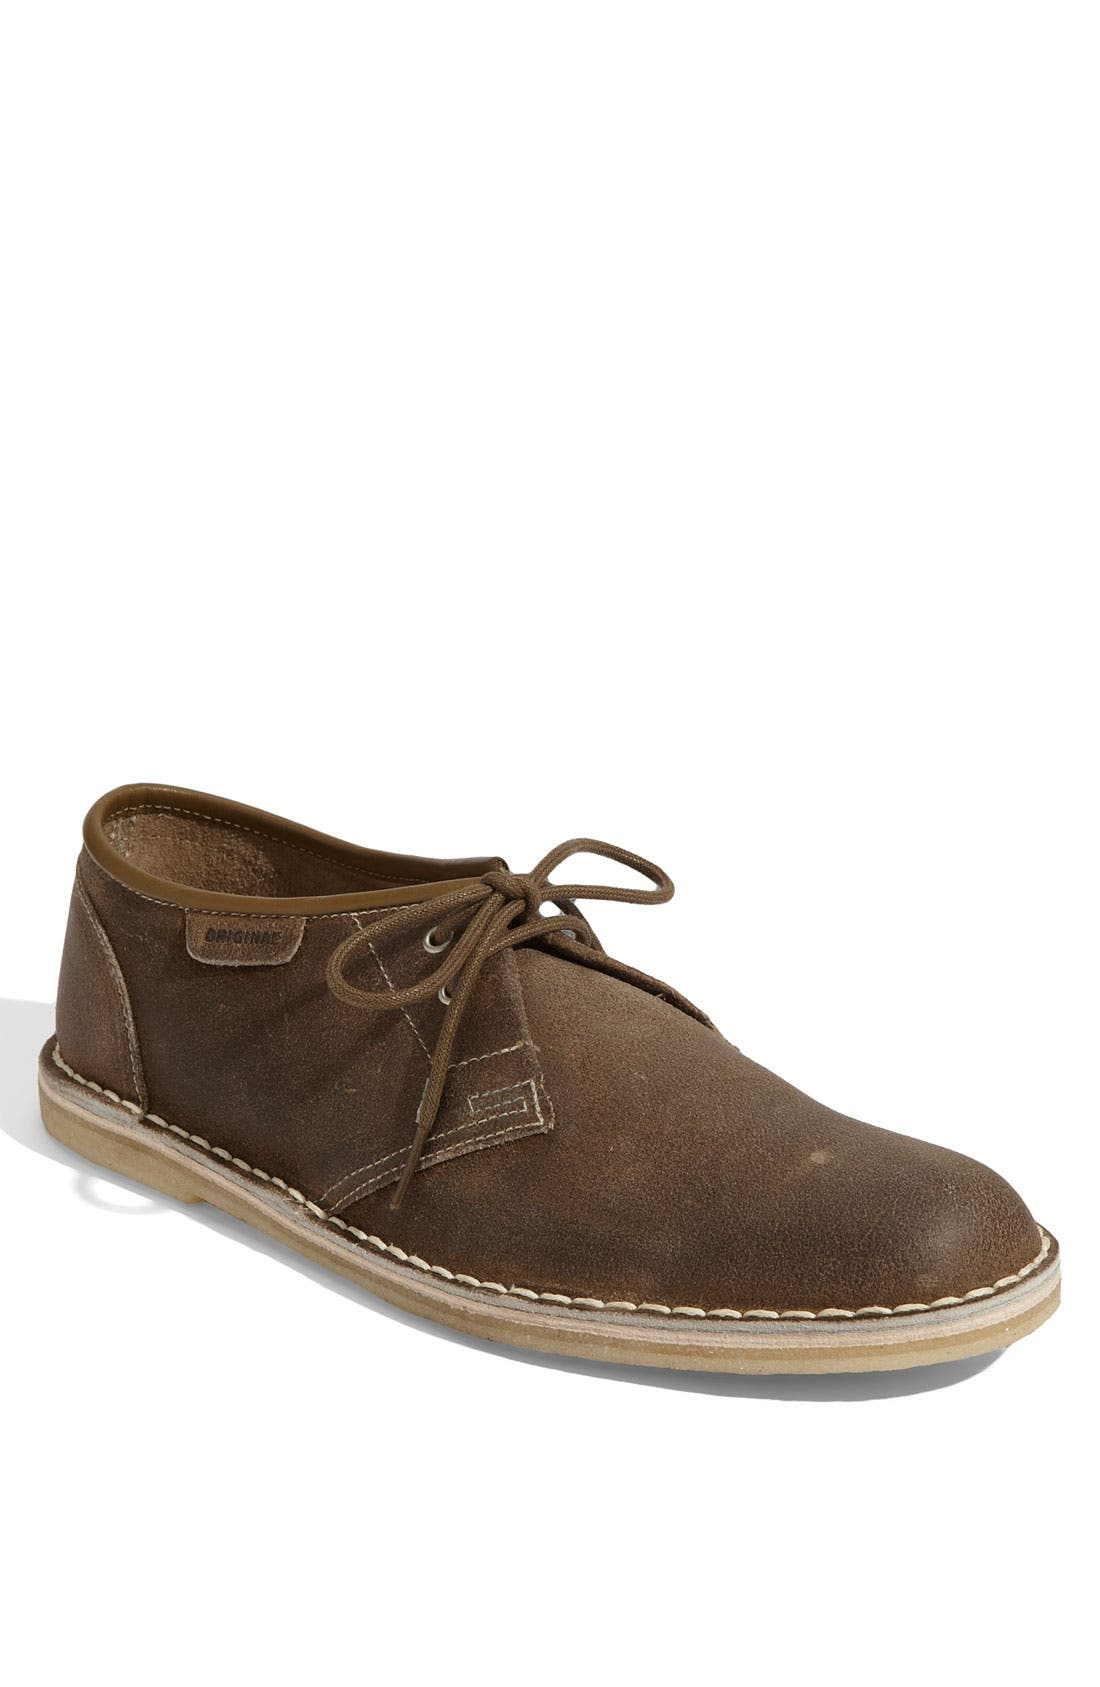 Alternate Image 1 Selected - Clarks® Originals 'Jink' Oxford   (Men)